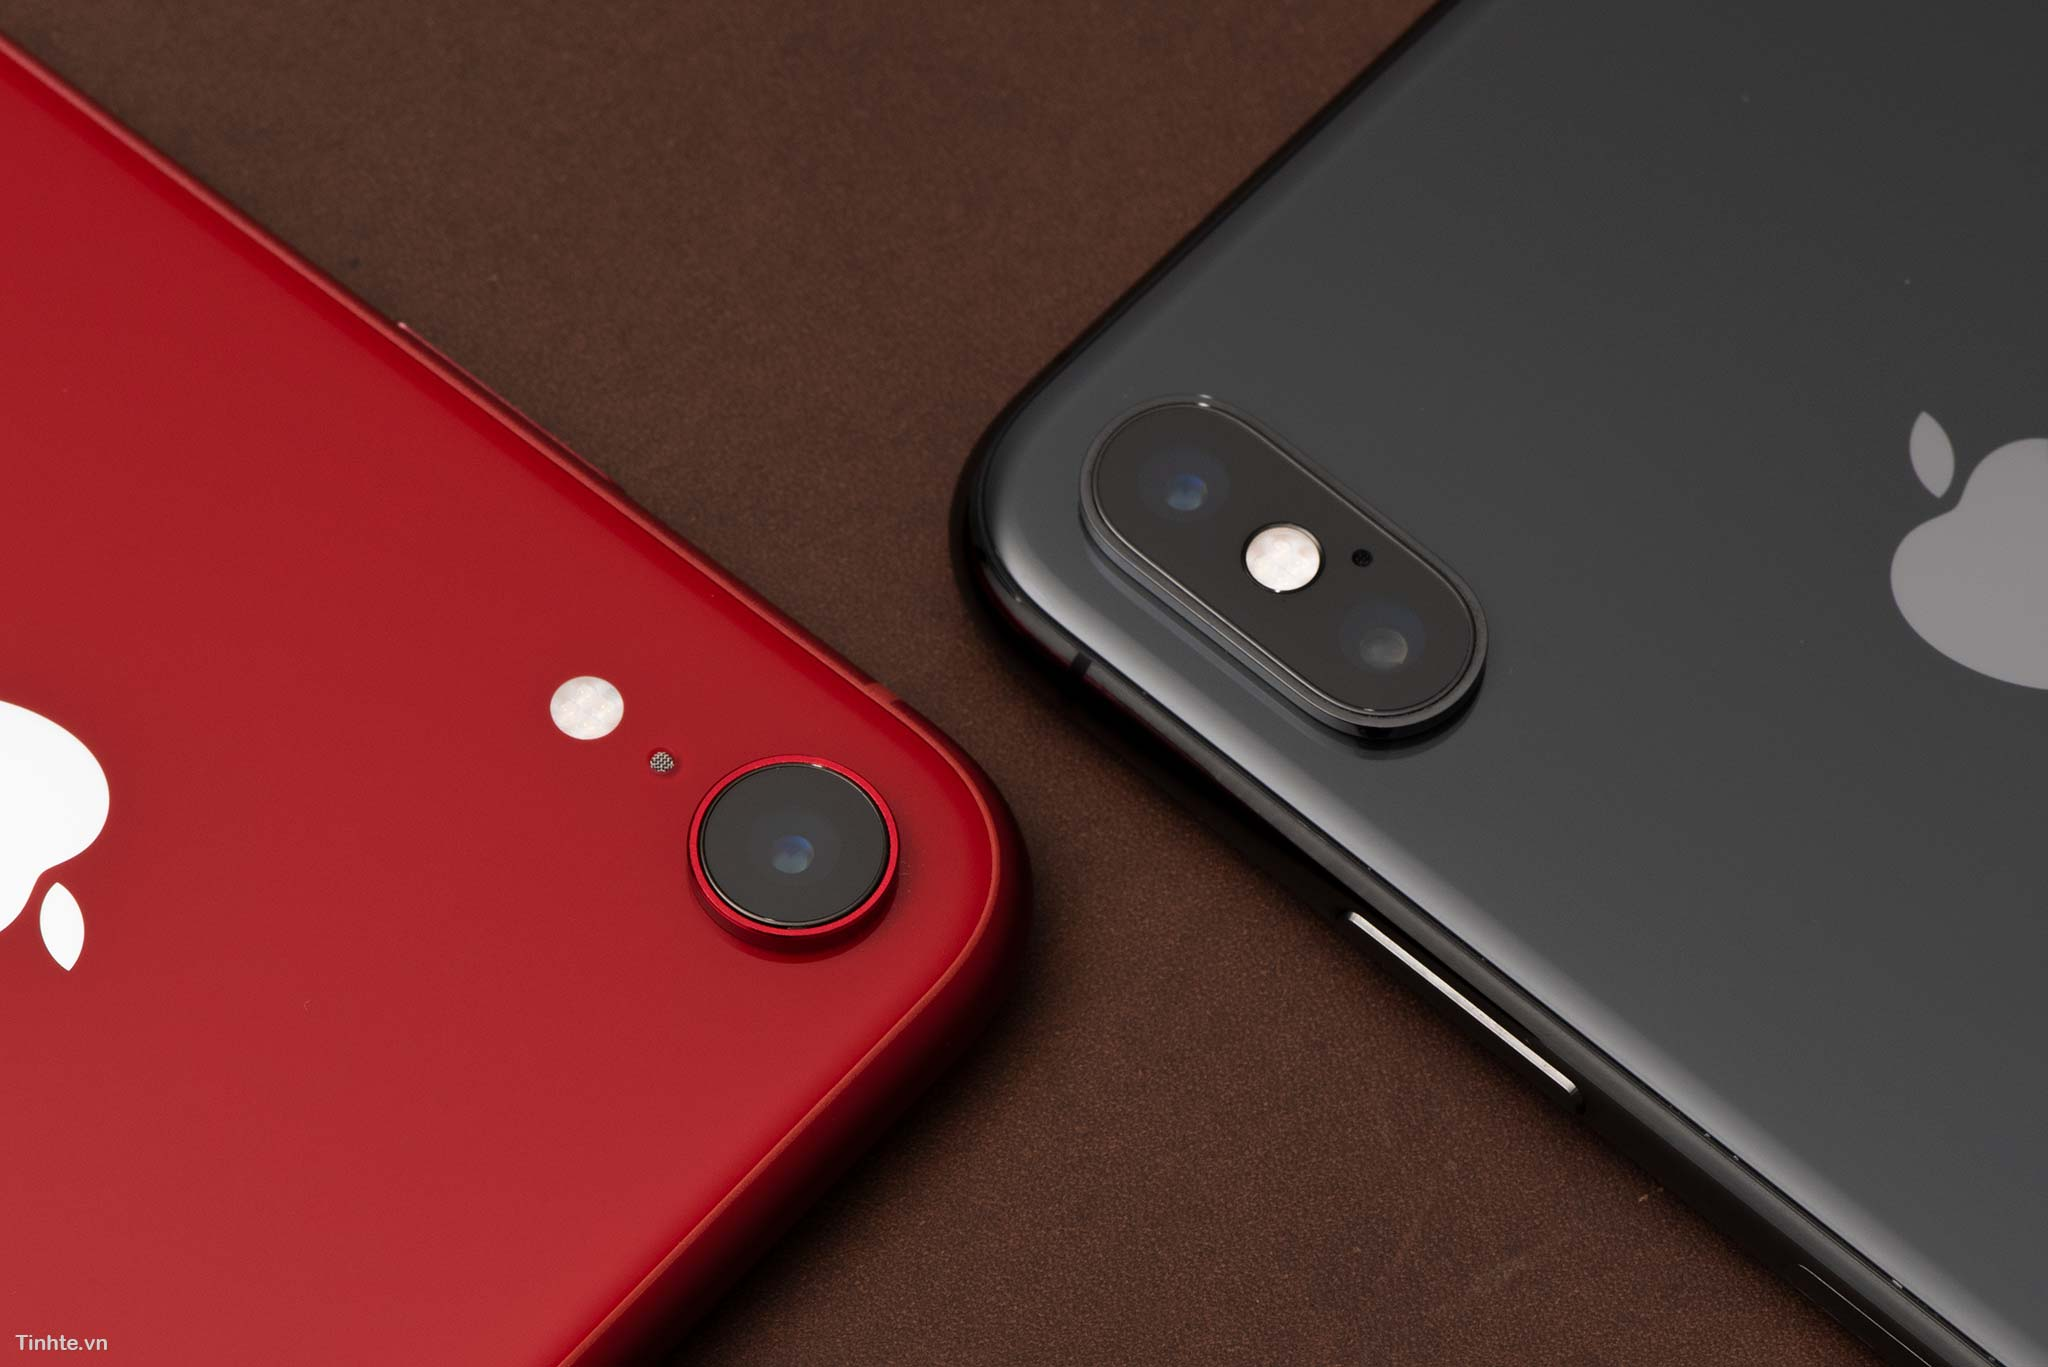 4713632_4463699_tinhte_tren_tay_iphone_xr_product_red_9.jpg